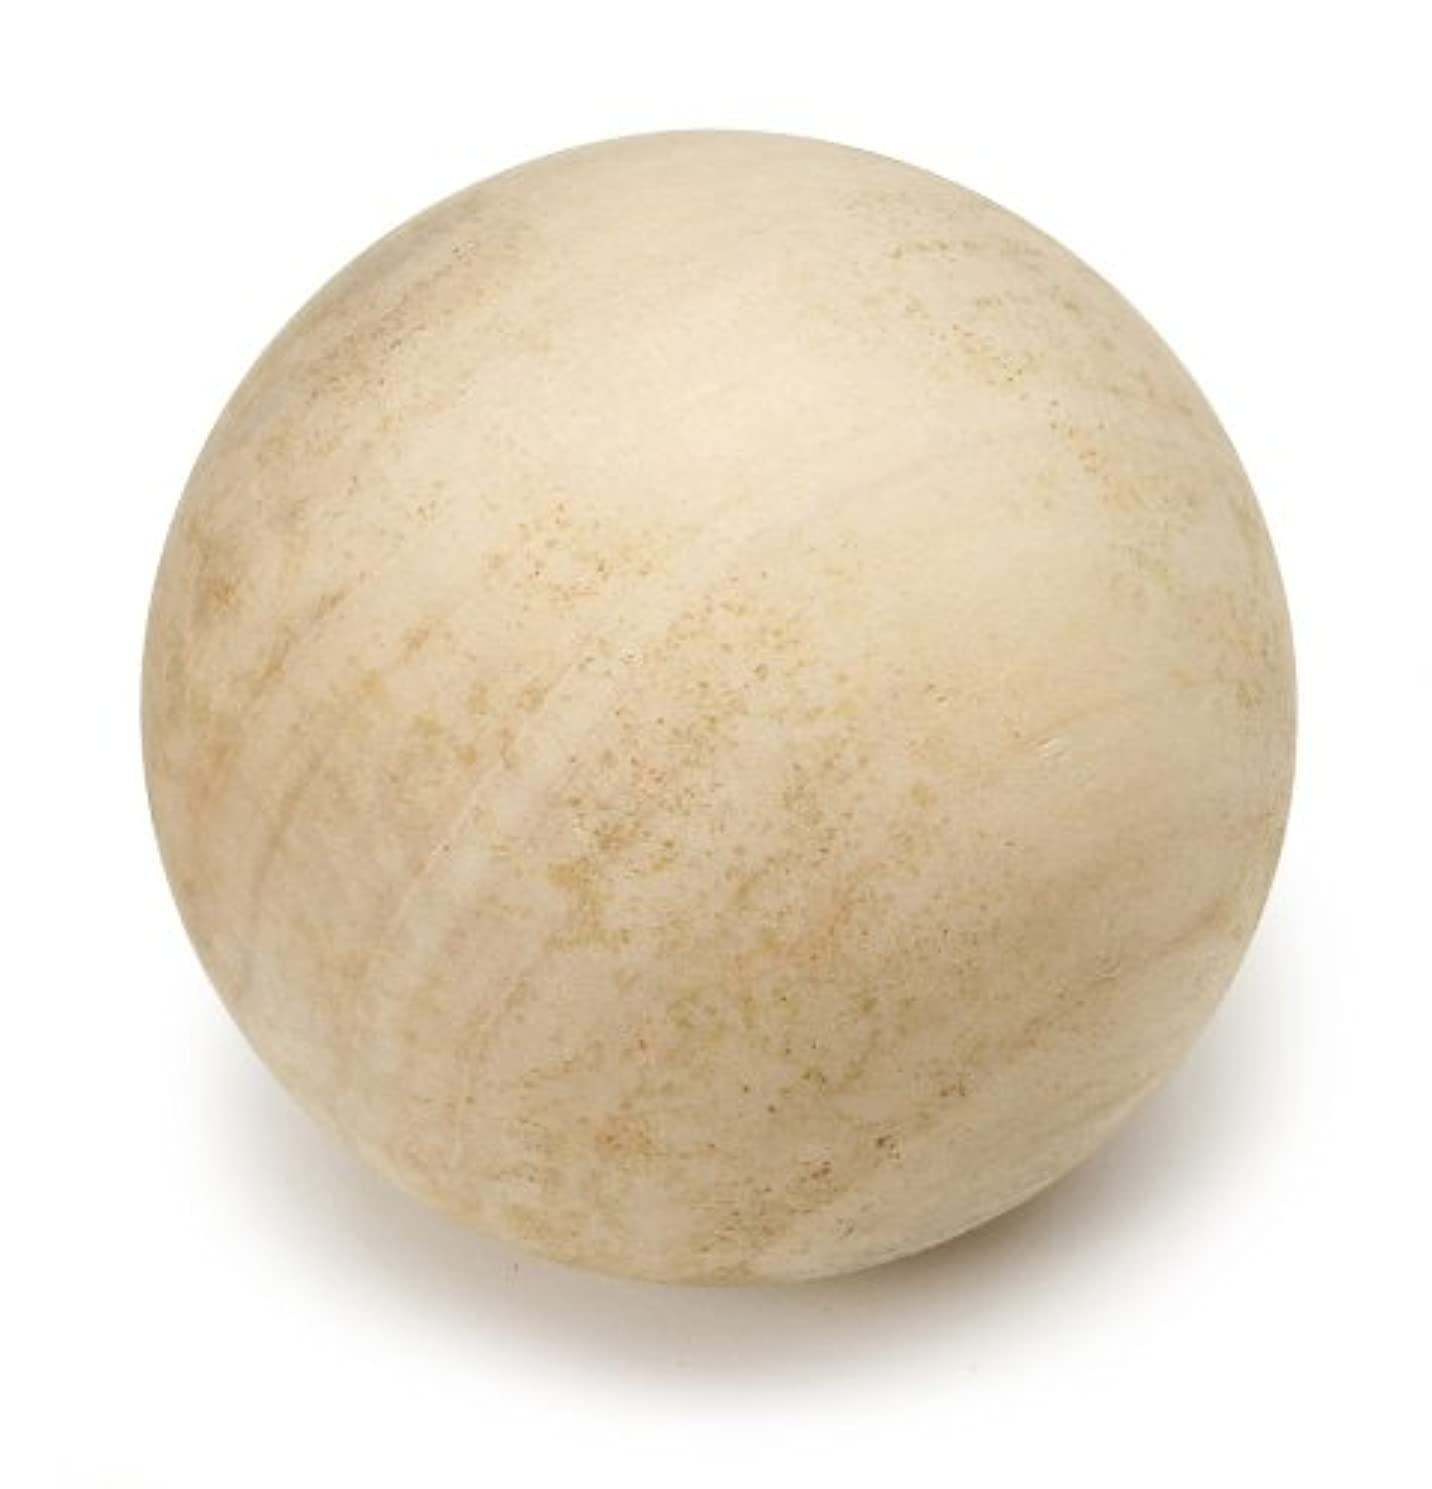 """Darice Unfinished Wood Round Ball, 3"""" (1pc) – Ideal for Numerous Craft Projects – Smooth, Solid Hemu Wood Ball – Natural Unfinished Wood is Easy to Decorate"""